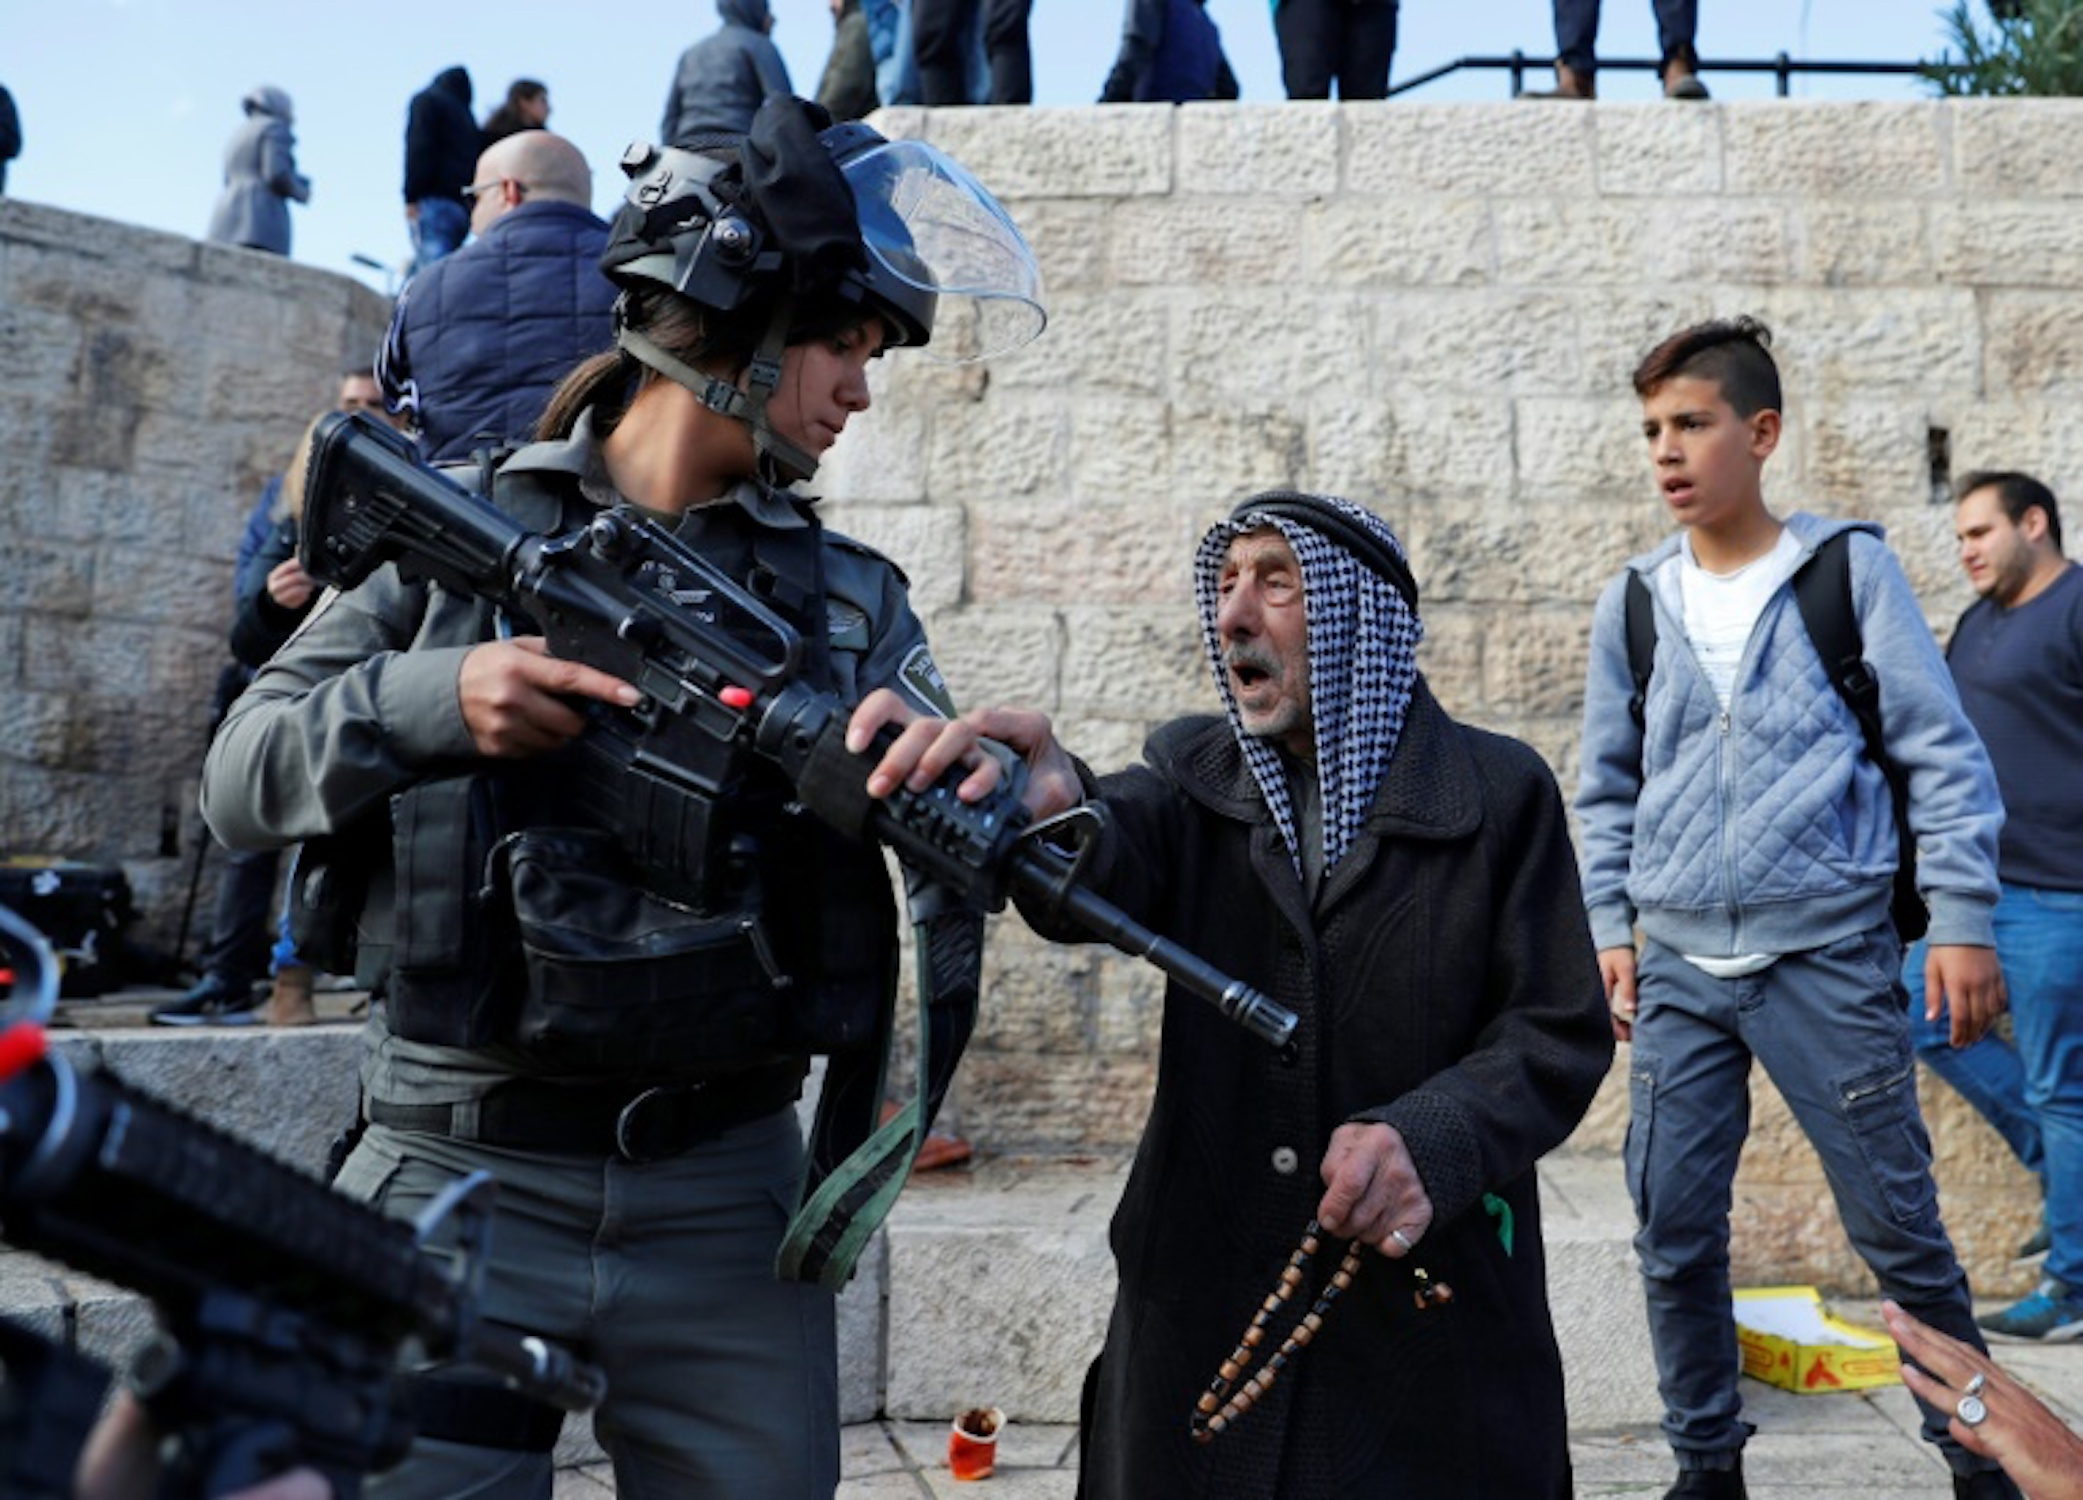 Israeli police disperse Palestinian protesters in Jerusalem's Old City